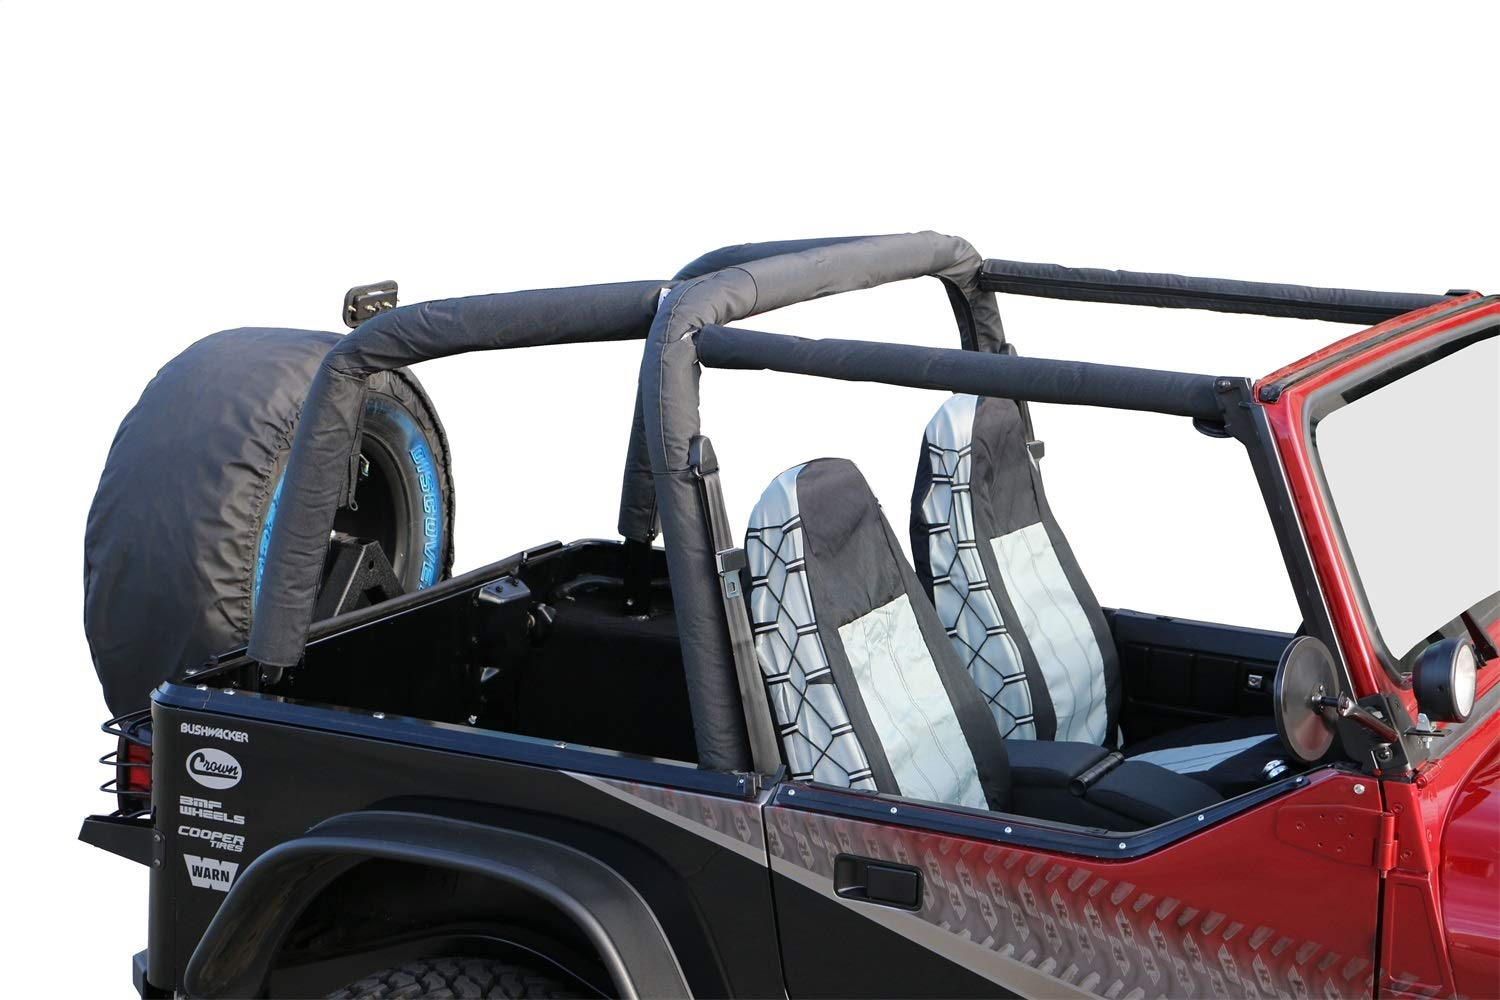 RAMPAGE PRODUCTS 768915 Roll Bar Pad and Cover Kit for 1992-1995 Jeep Wrangler YJ, Black Denim